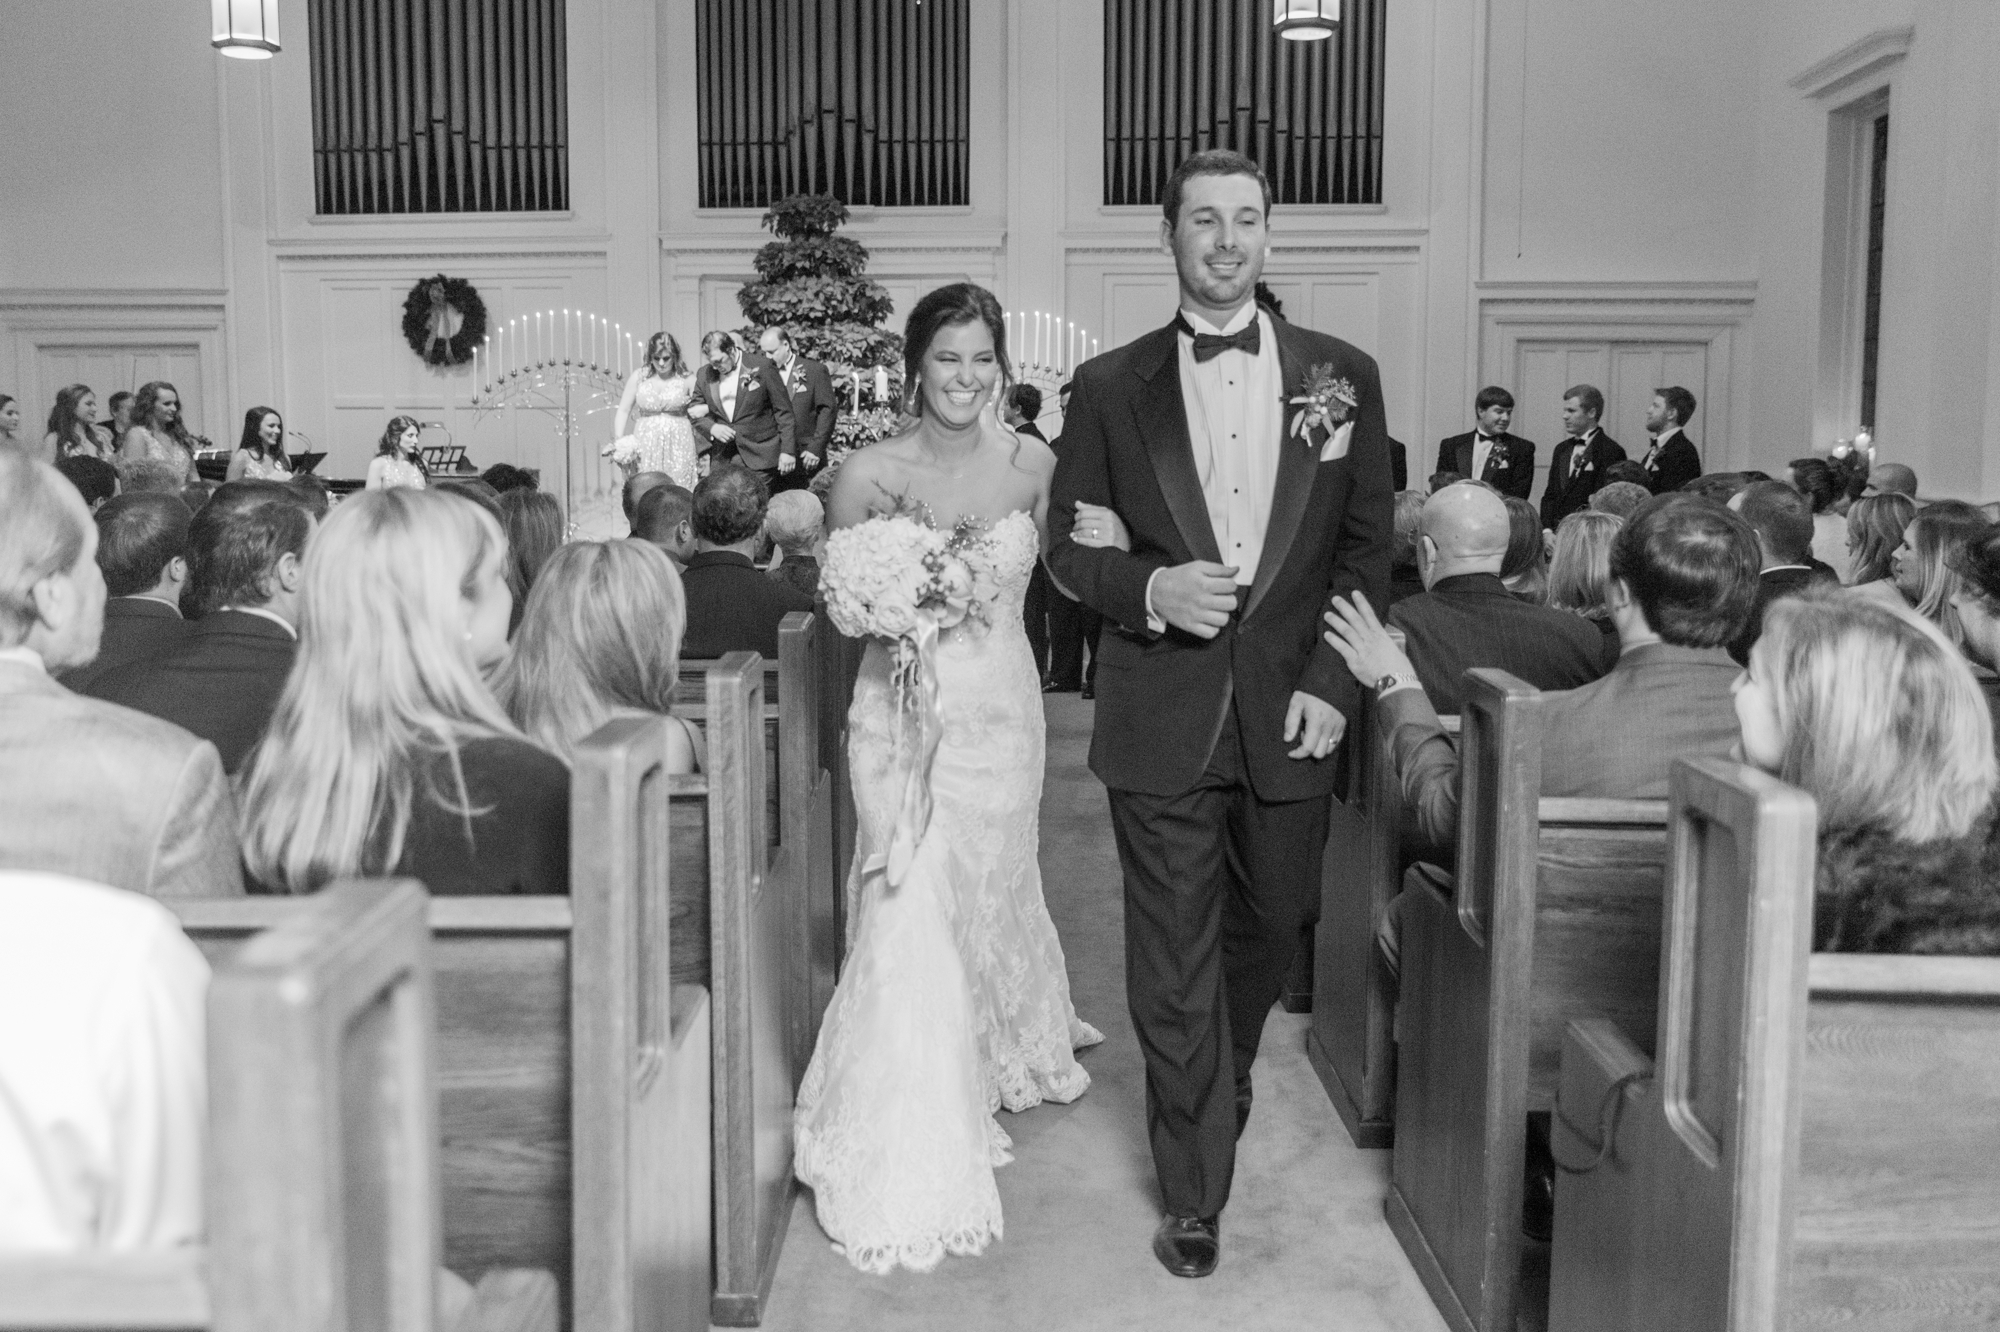 brozovich wedding 64.jpg